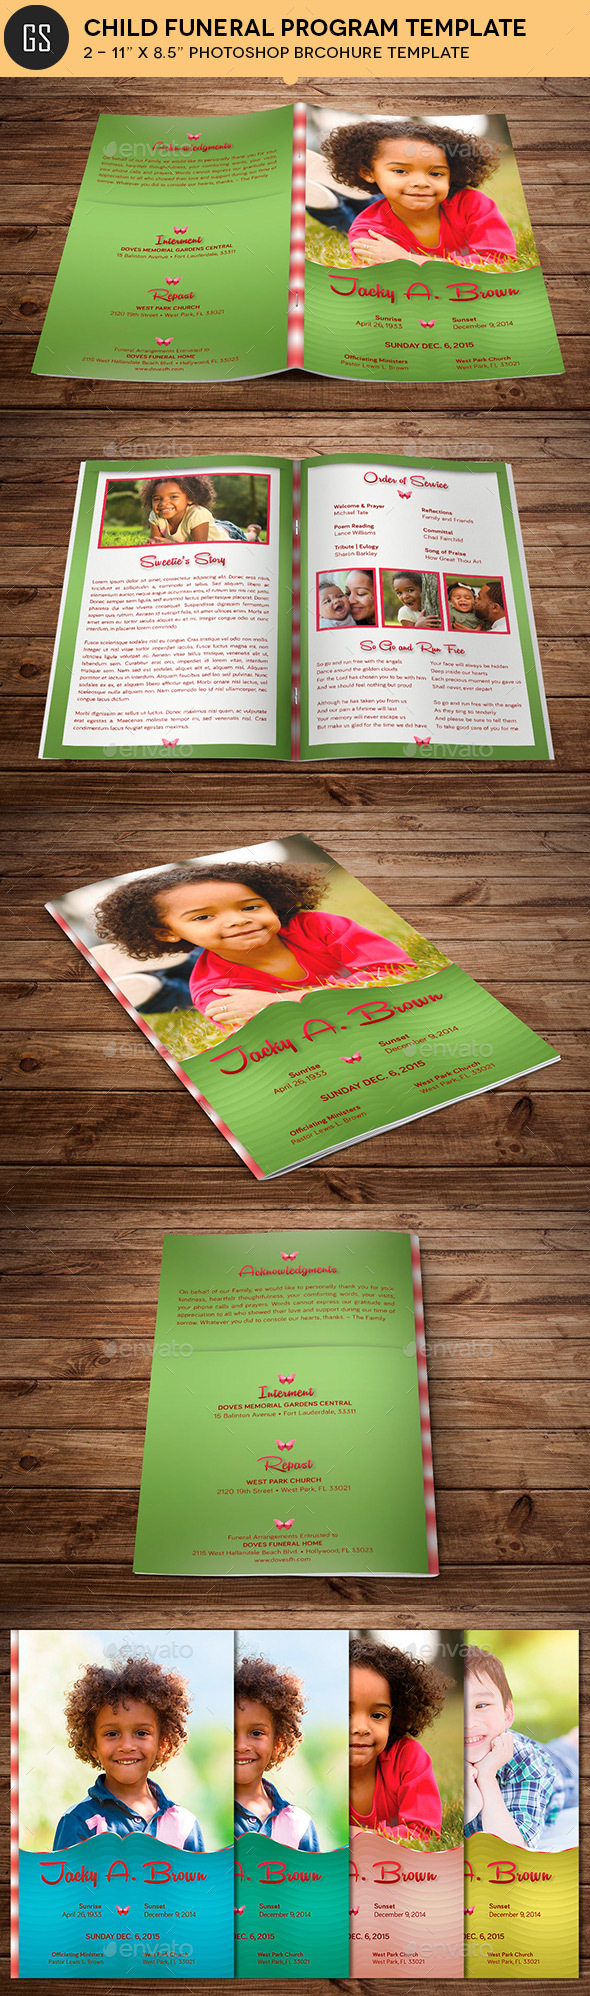 Child Funeral Program Template Photoshop   Informational Brochures